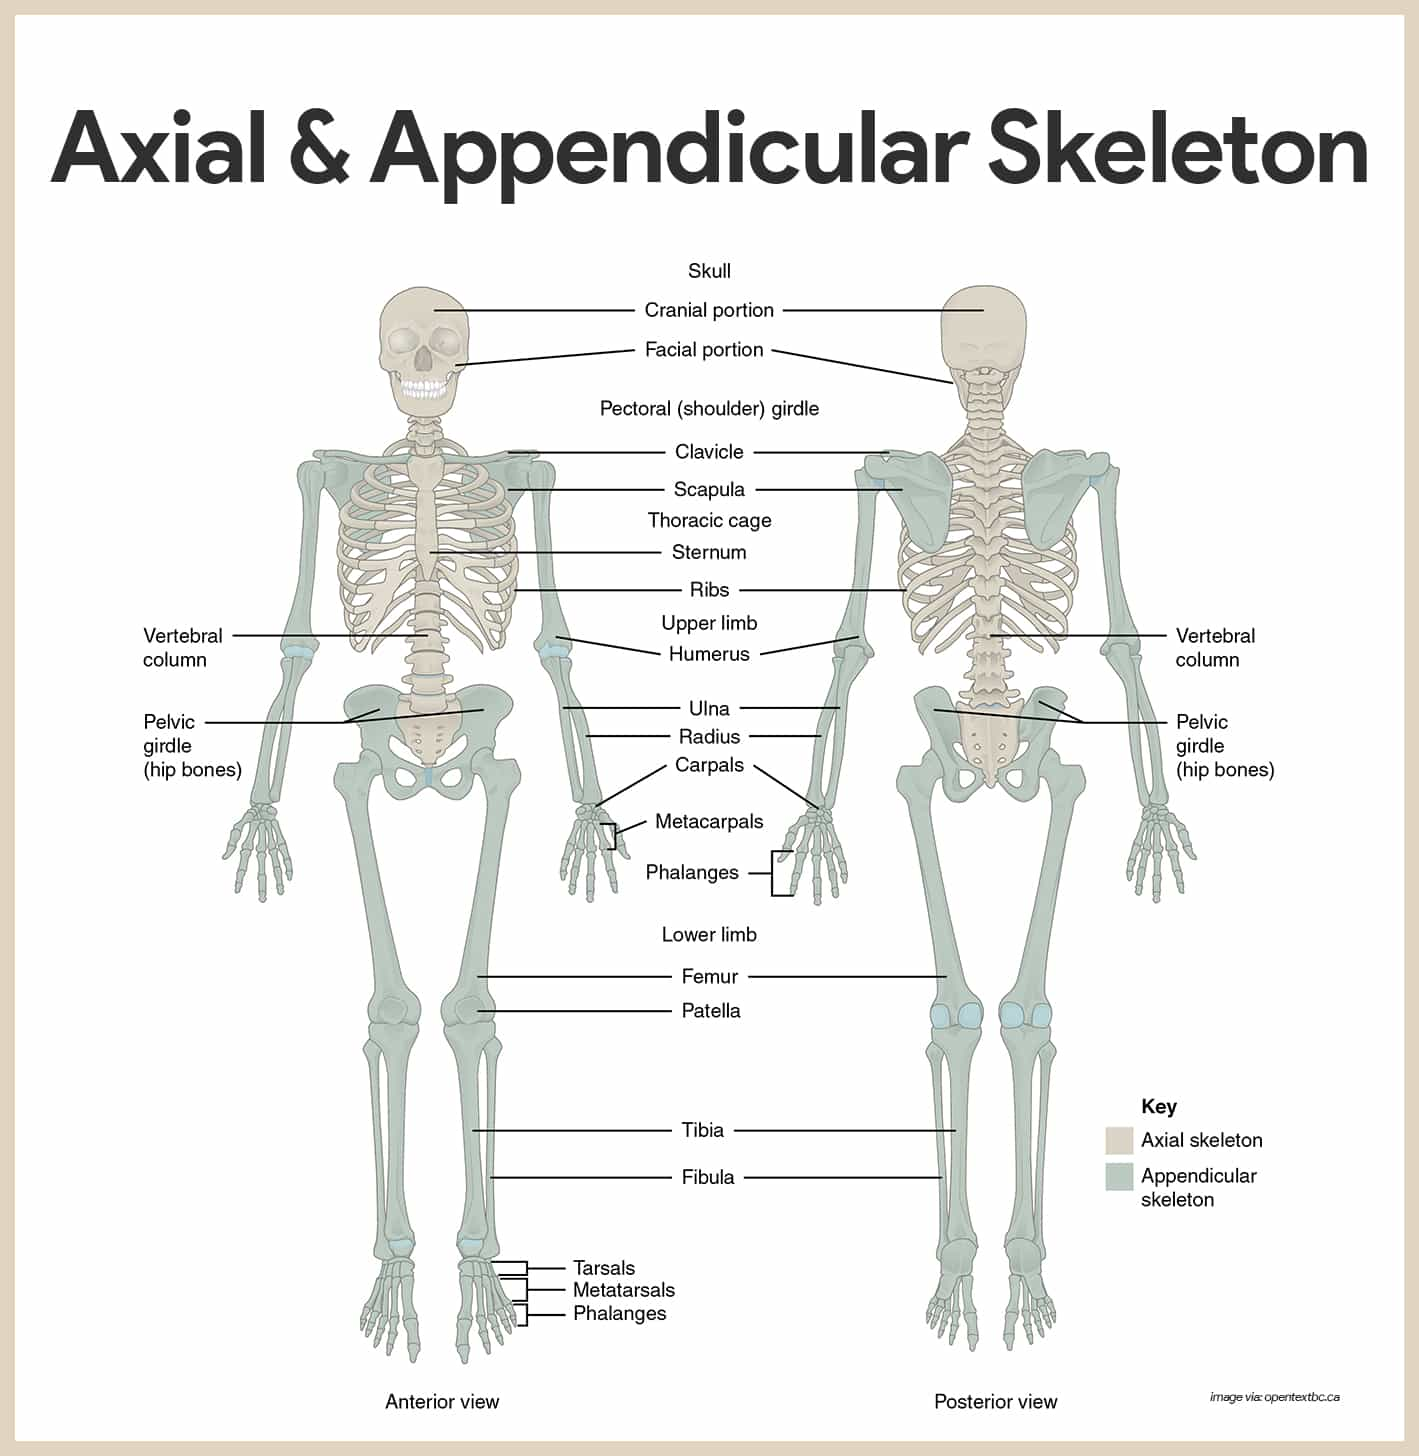 worksheet Appendicular Skeleton Worksheet skeletal system anatomy and physiology nurseslabs axial appendicular skeleton for nurses